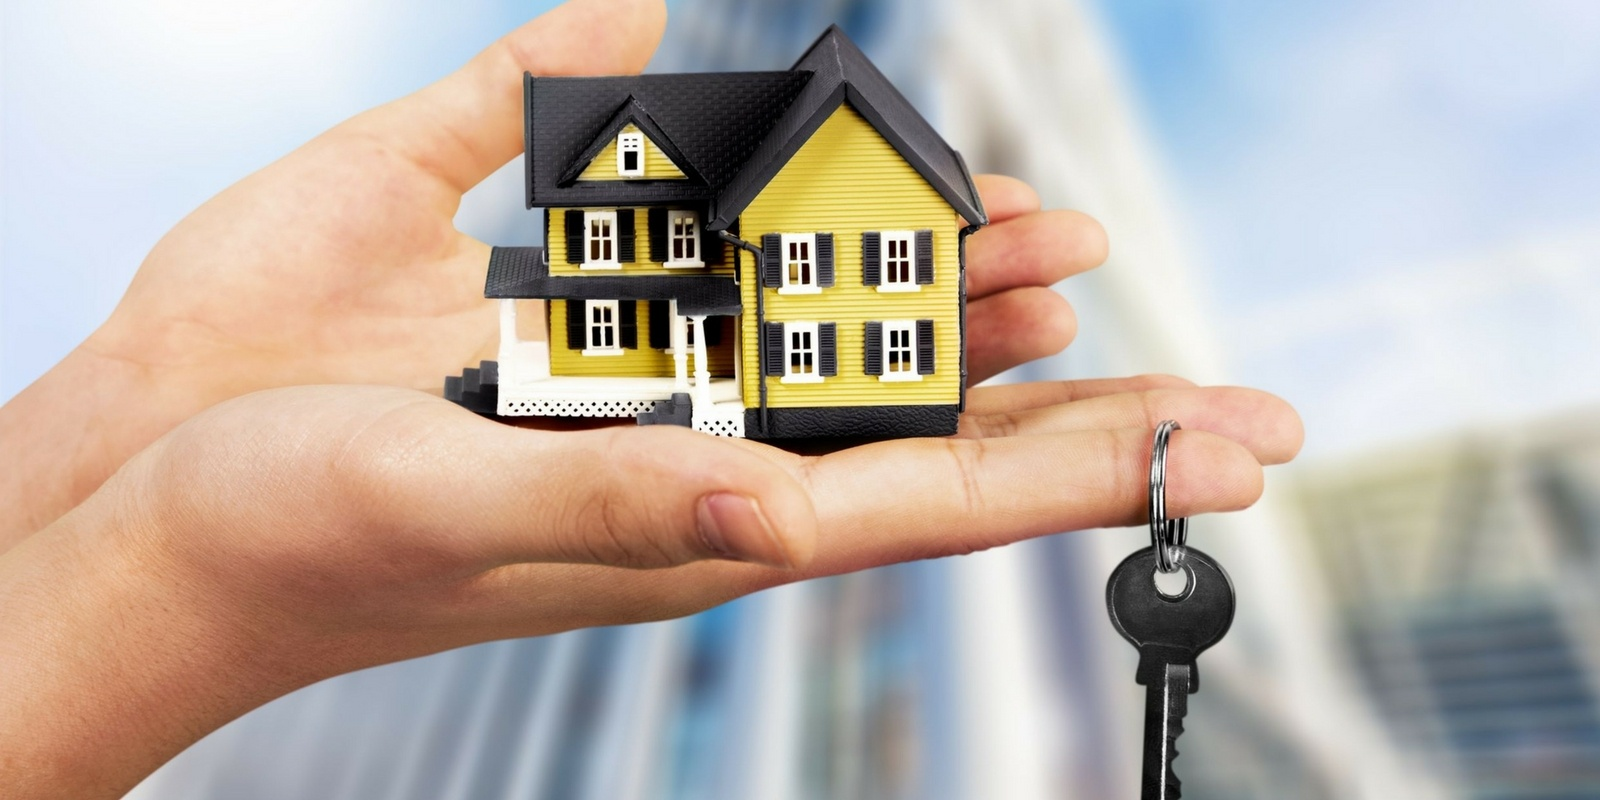 Nearly 50% Delhi-NCR Home-seekers Want A Property Close To Their Workspace